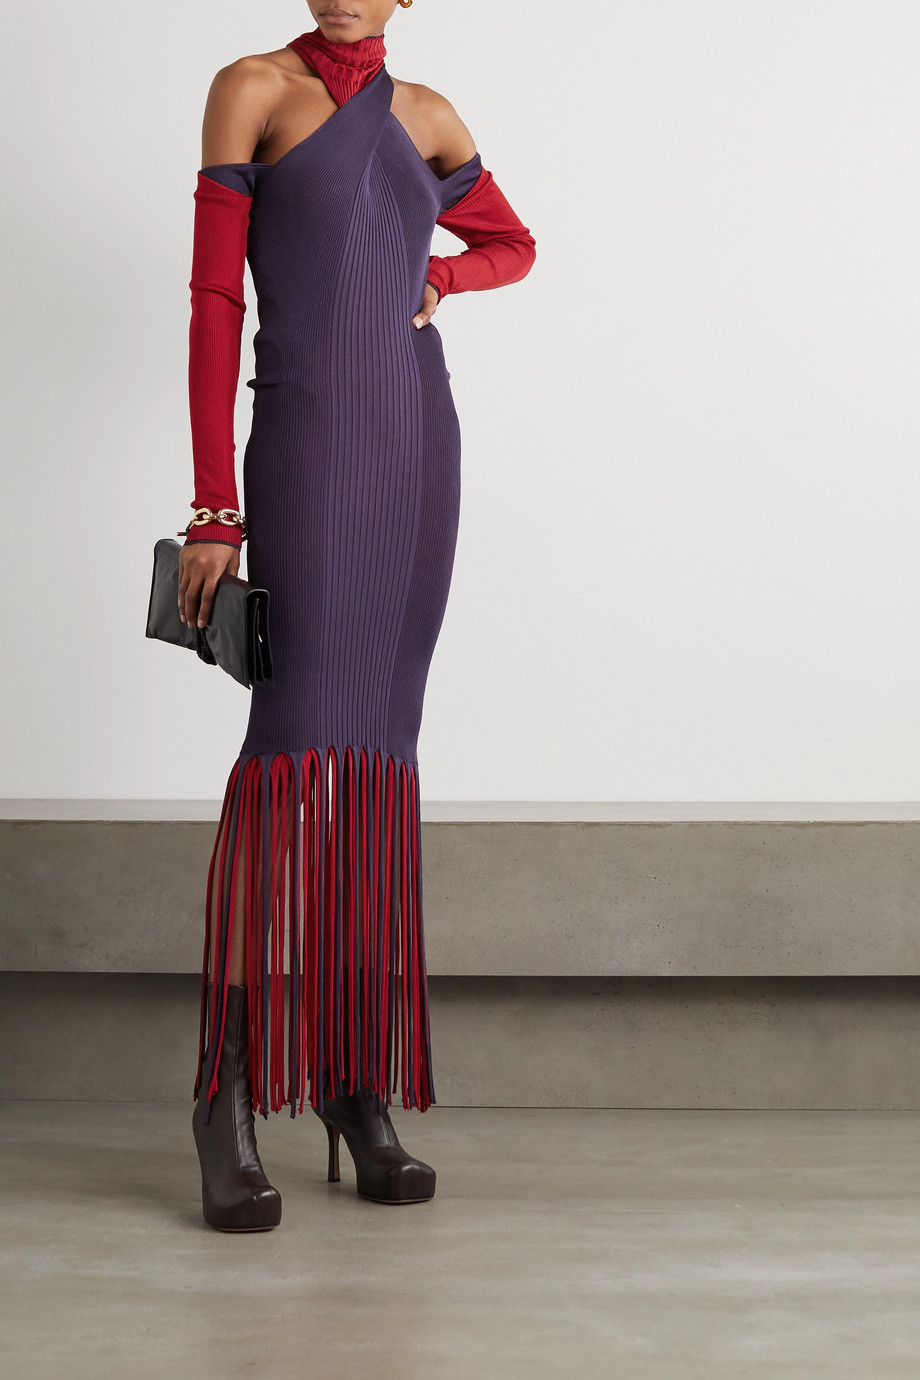 Bottega Veneta Cutout fringed ribbed stretch-knit dress